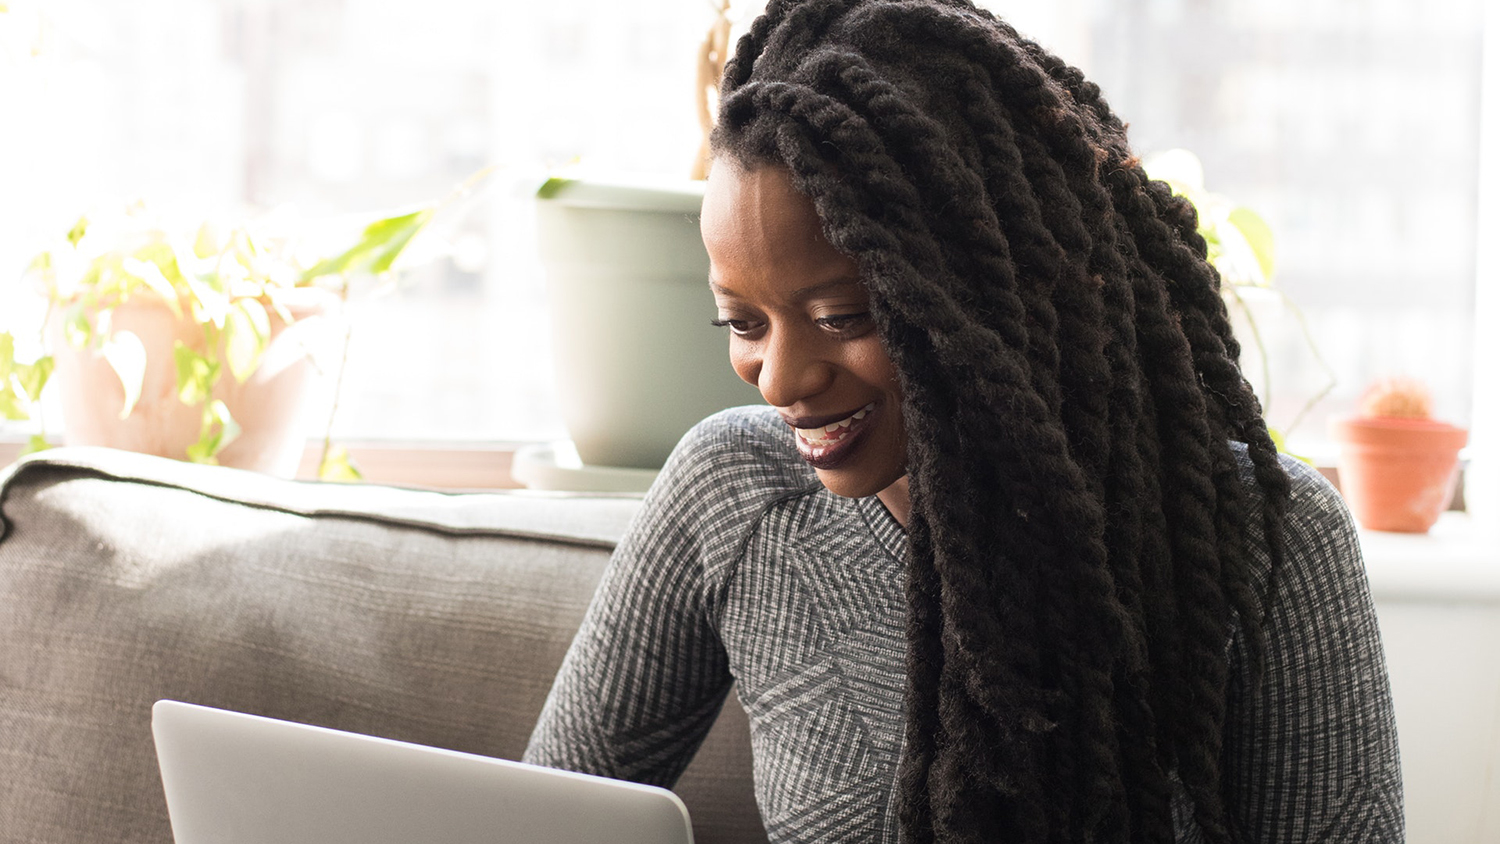 Woman on laptop at home smiling